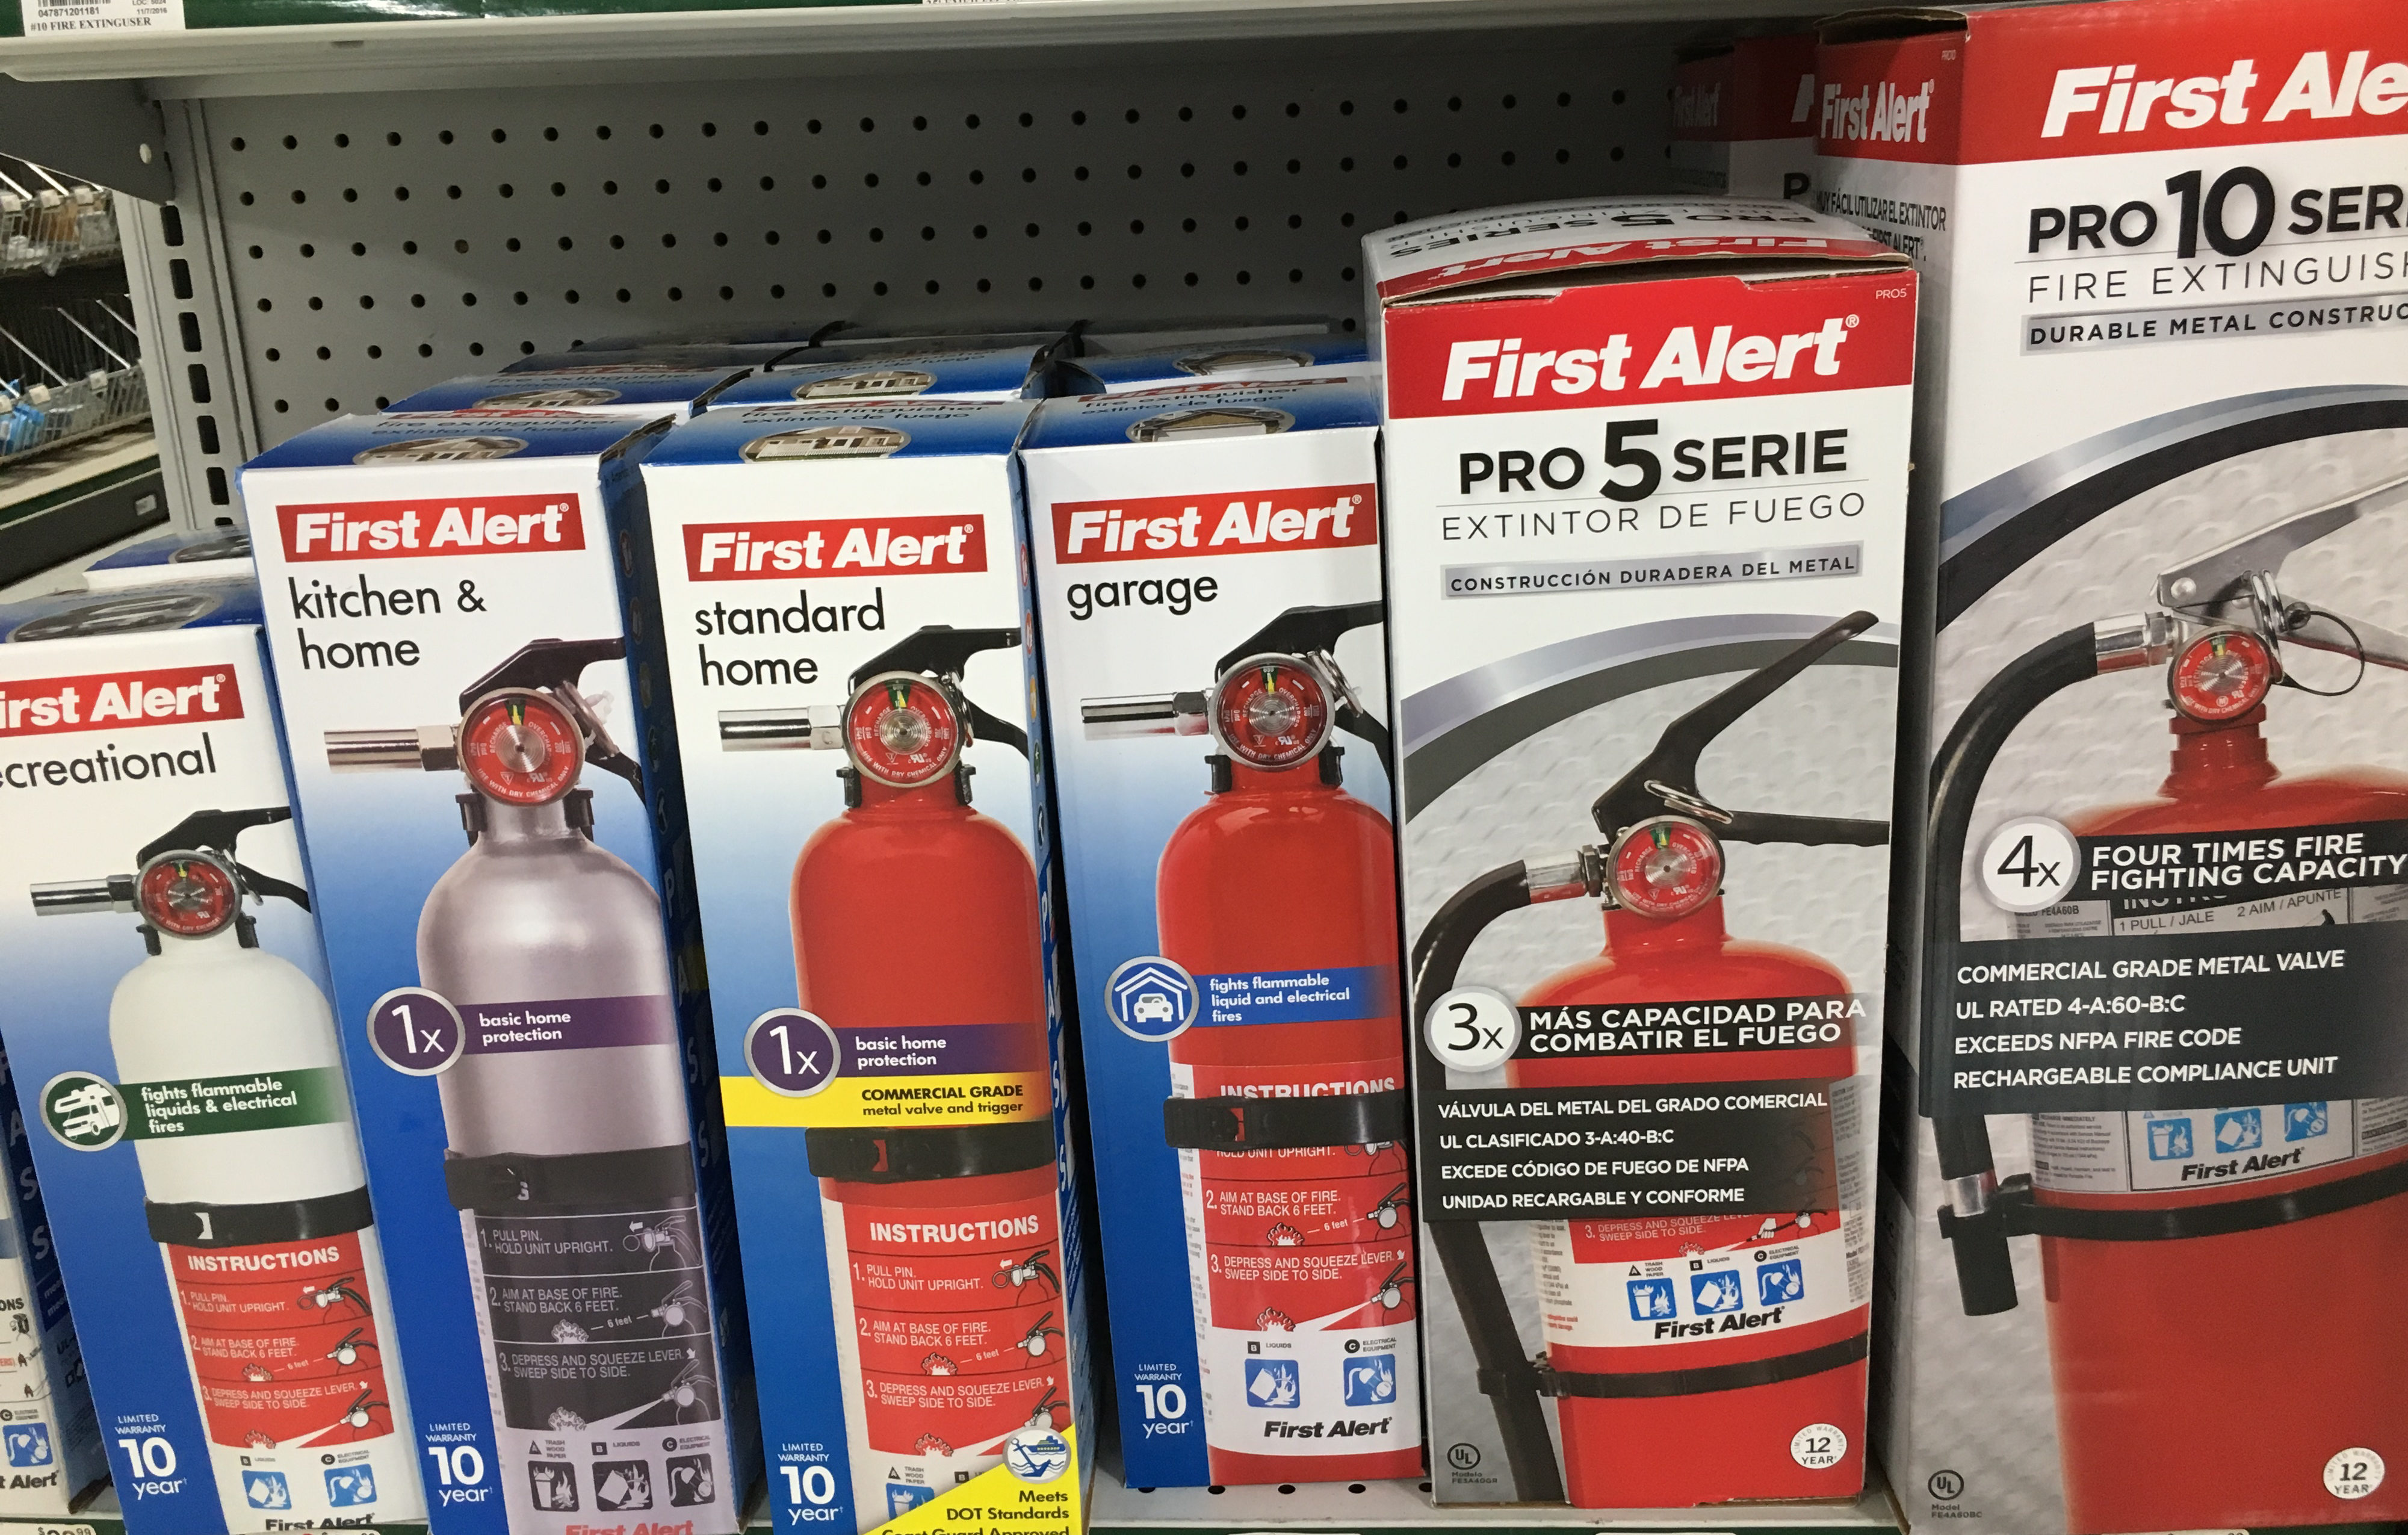 Fire extinguishers can save lives and property